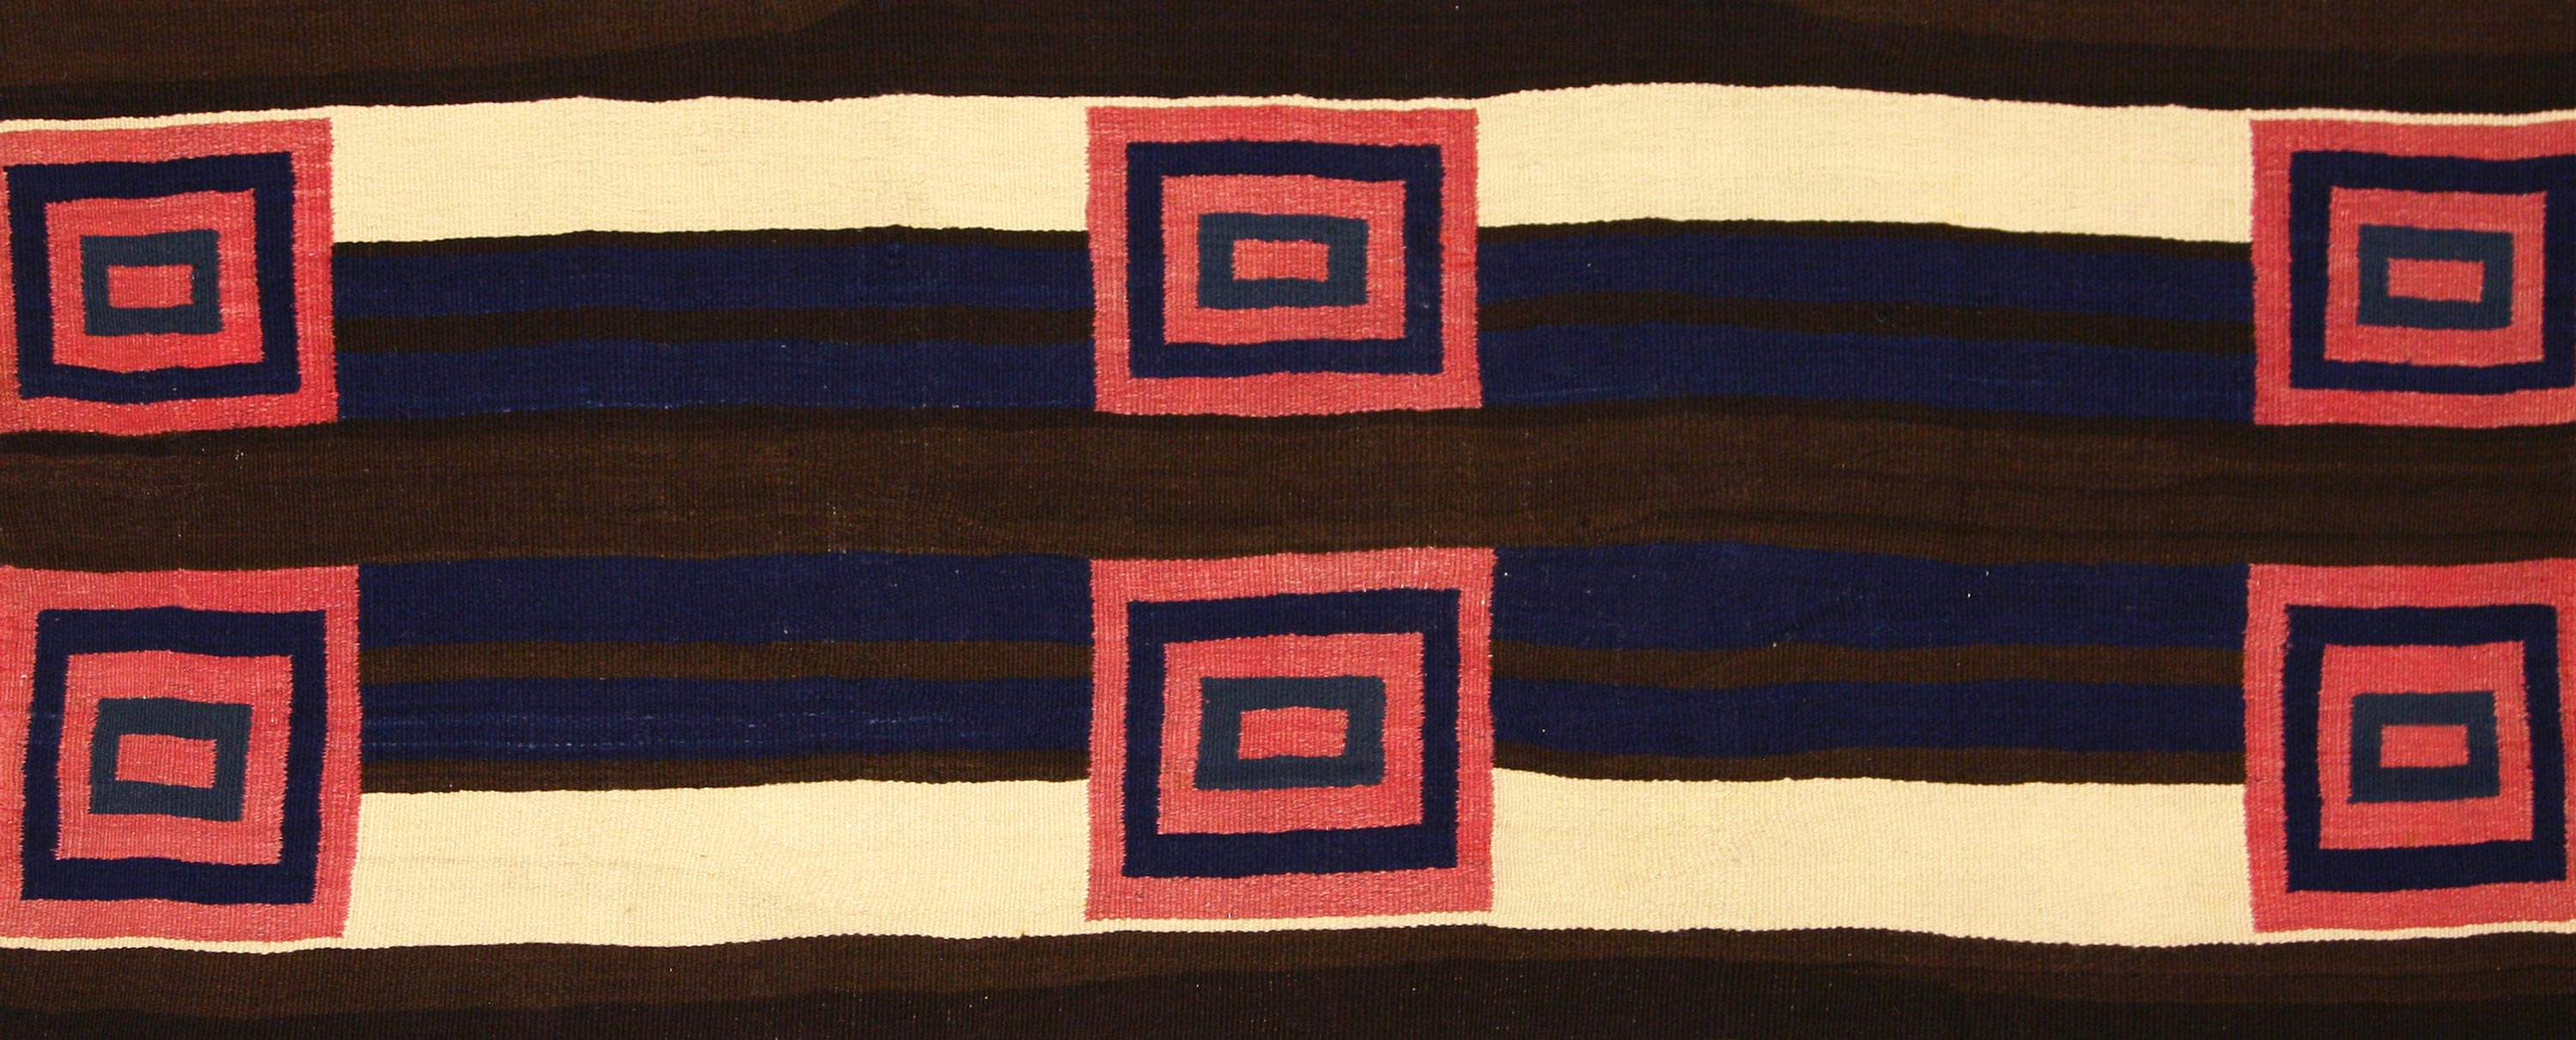 Articles on navajo chiefs blankets by navajo weaving expert dr articles on navajo chiefs blankets by navajo weaving expert dr sublette biocorpaavc Images